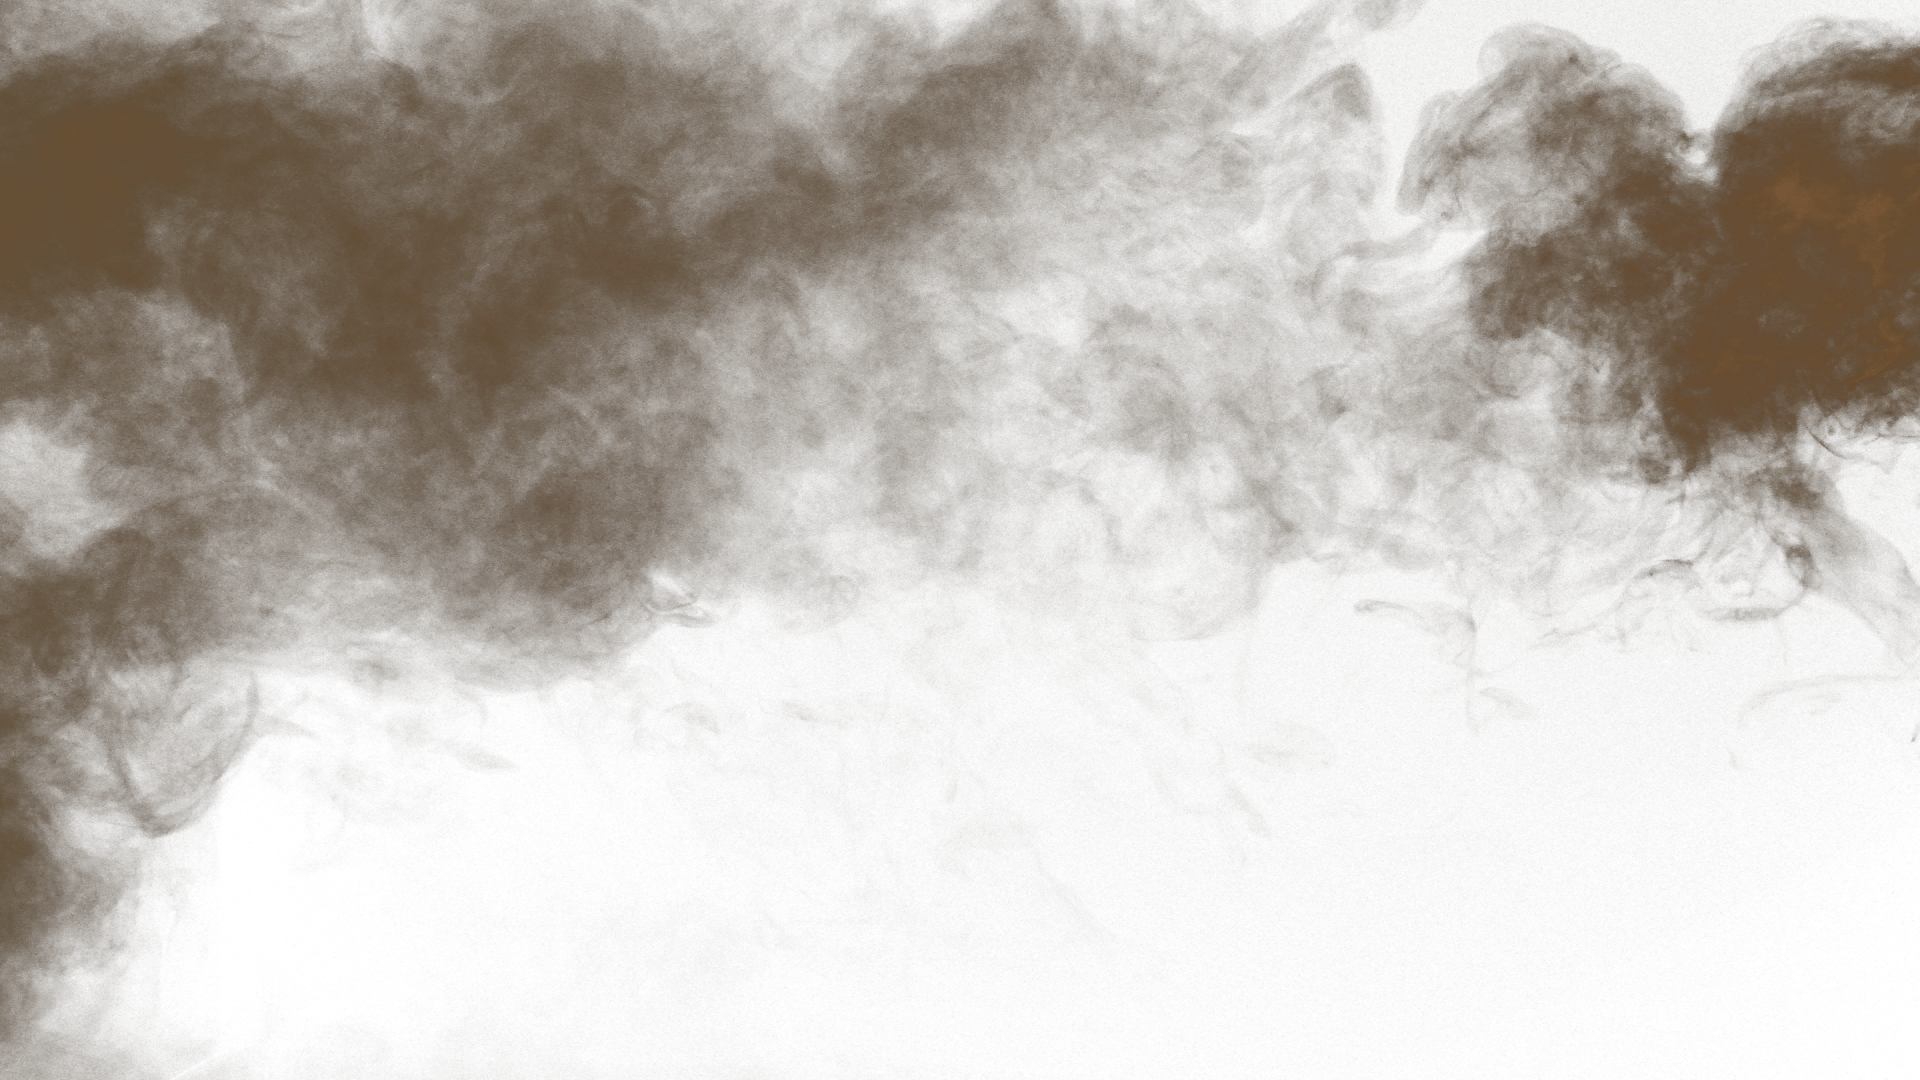 Dirty texture png. Fog transparent stickpng nature